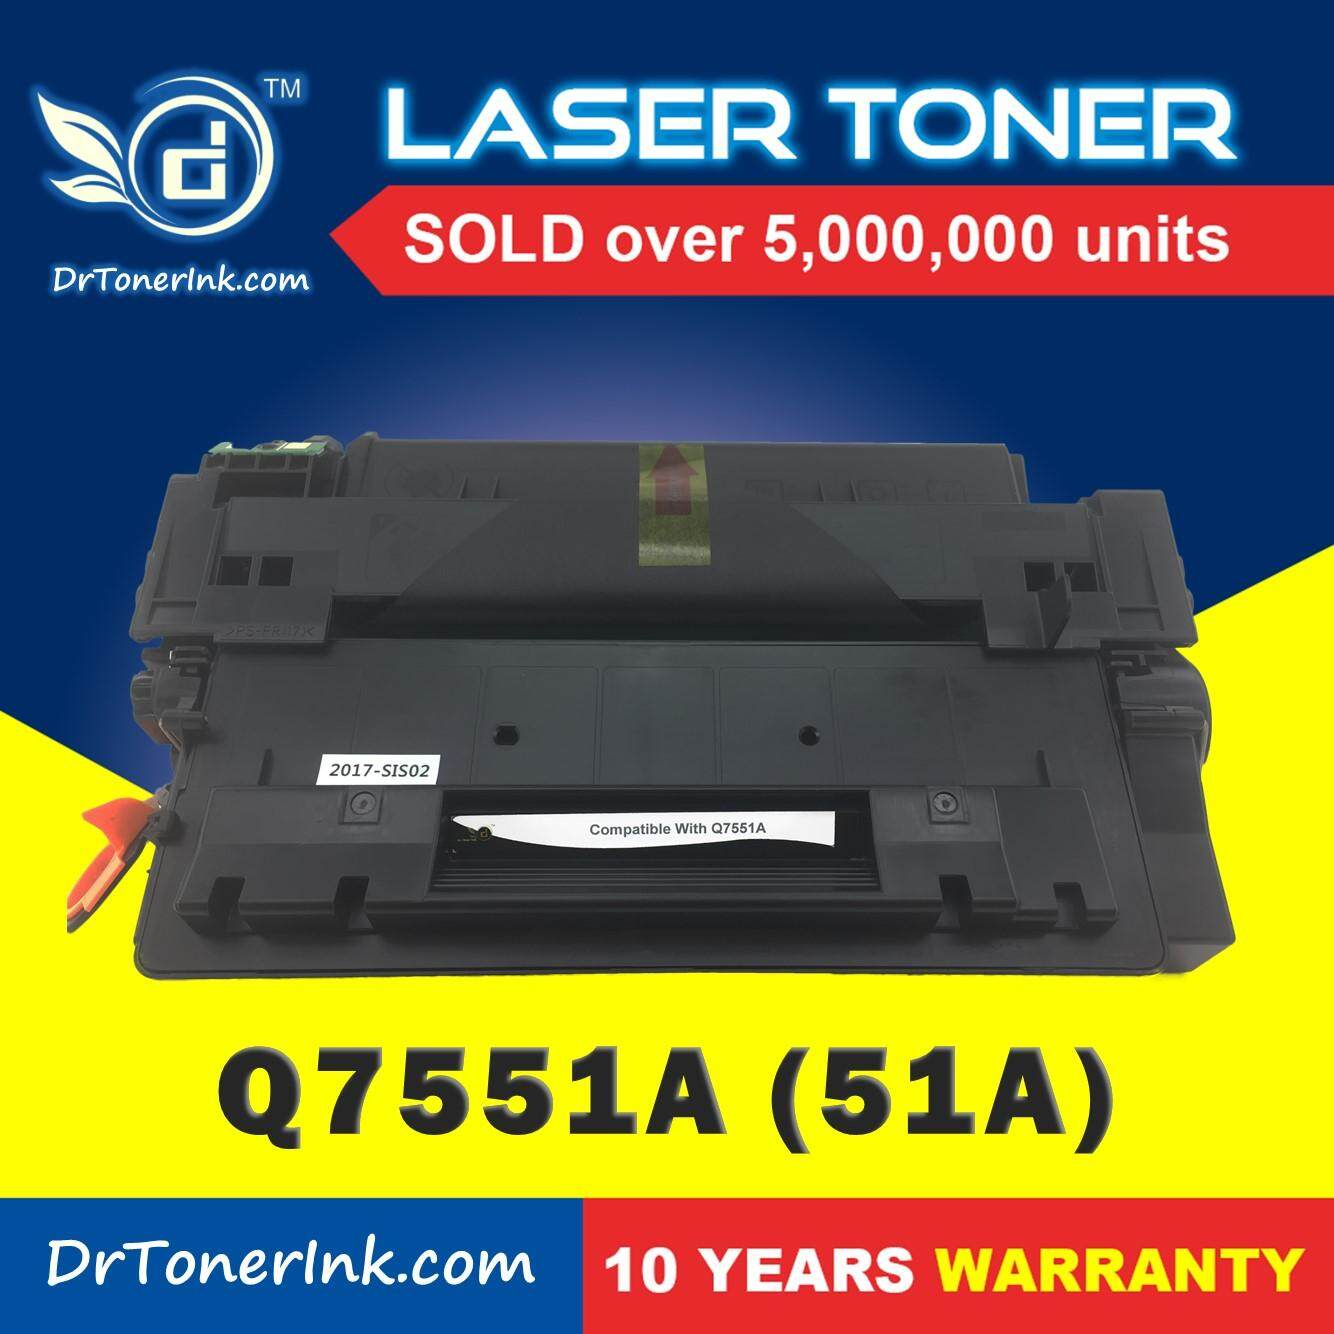 Compatible Toner Drtoner - Q7551a / 7551a / 7551 - 51a (mono/black) - Compatible With Hp Laserjet M3027 / M3027x / M3035 / M3035xs / P3005 / P3005d / P3005dn / P3005n / P3005x - Low Cost And Affordable By Drtonerink.com.